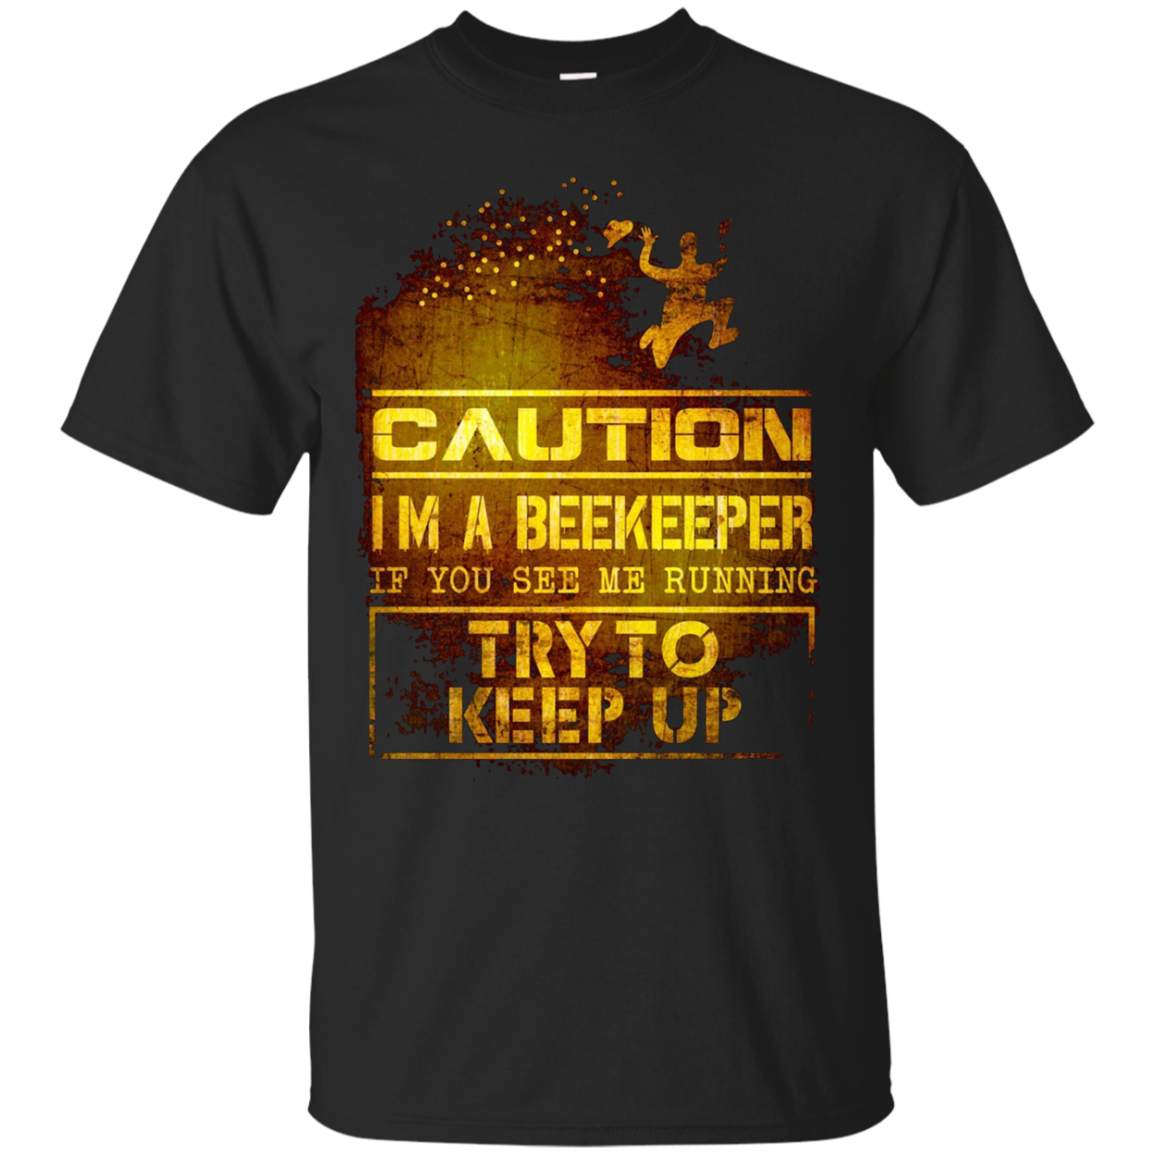 Caution Beekeeper - Funny Beekeepers T-shirt Gift